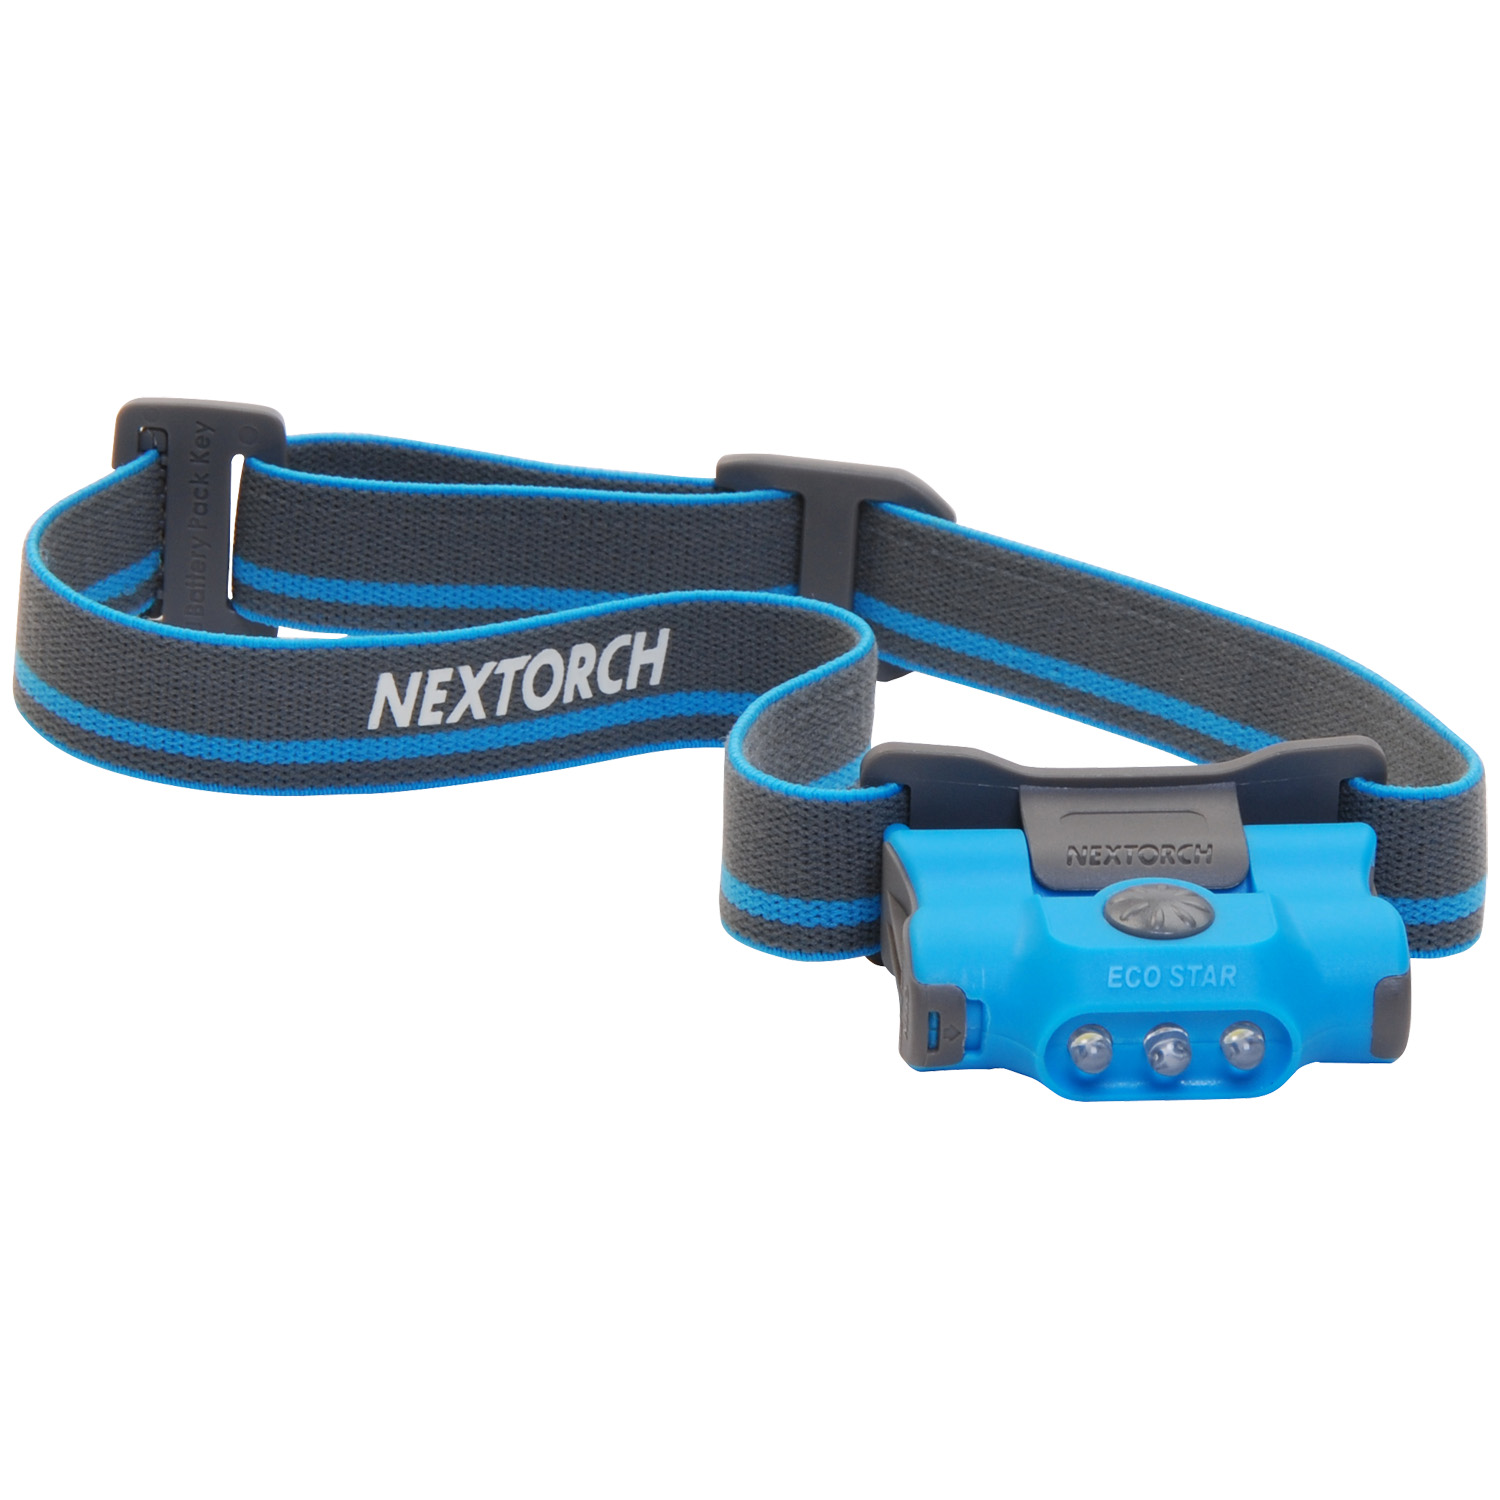 Nextorch Eco Star Headlamp, Blue